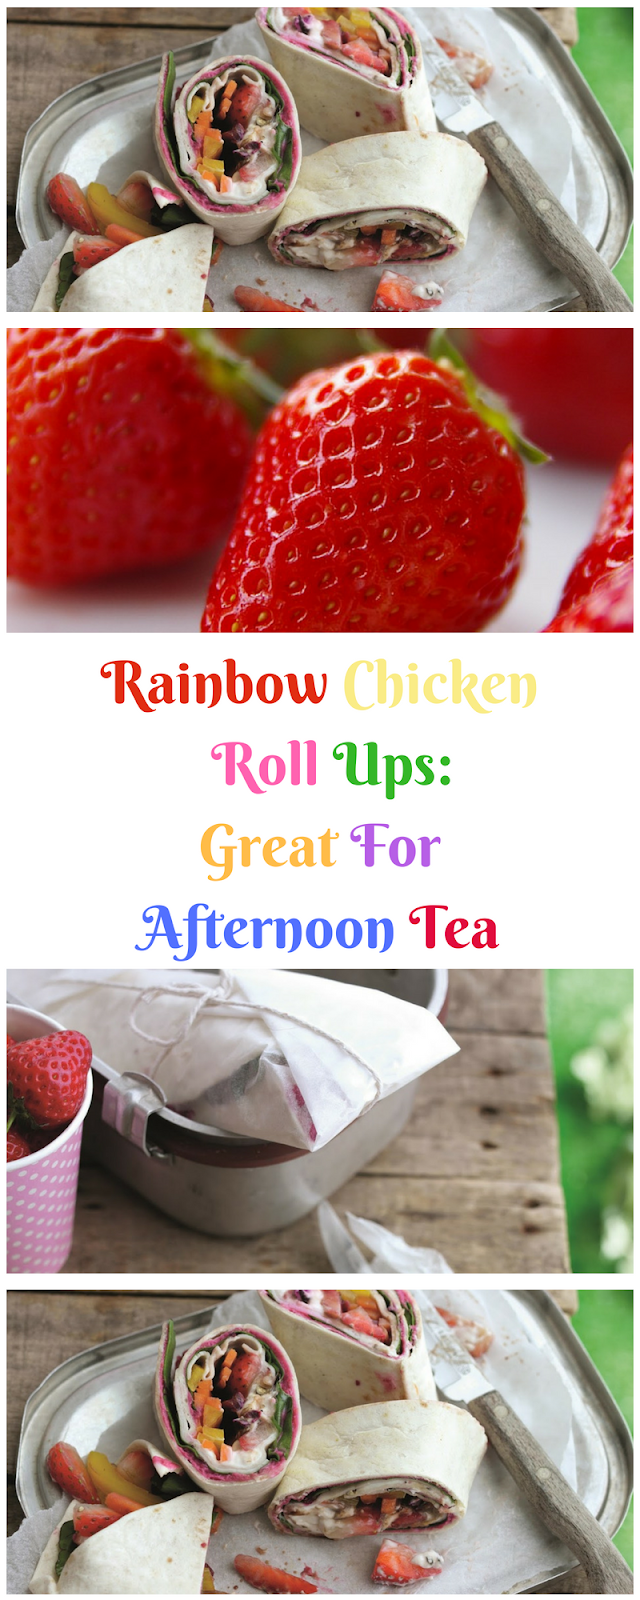 Rainbow Chicken Roll Ups: Great For Afternoon Tea